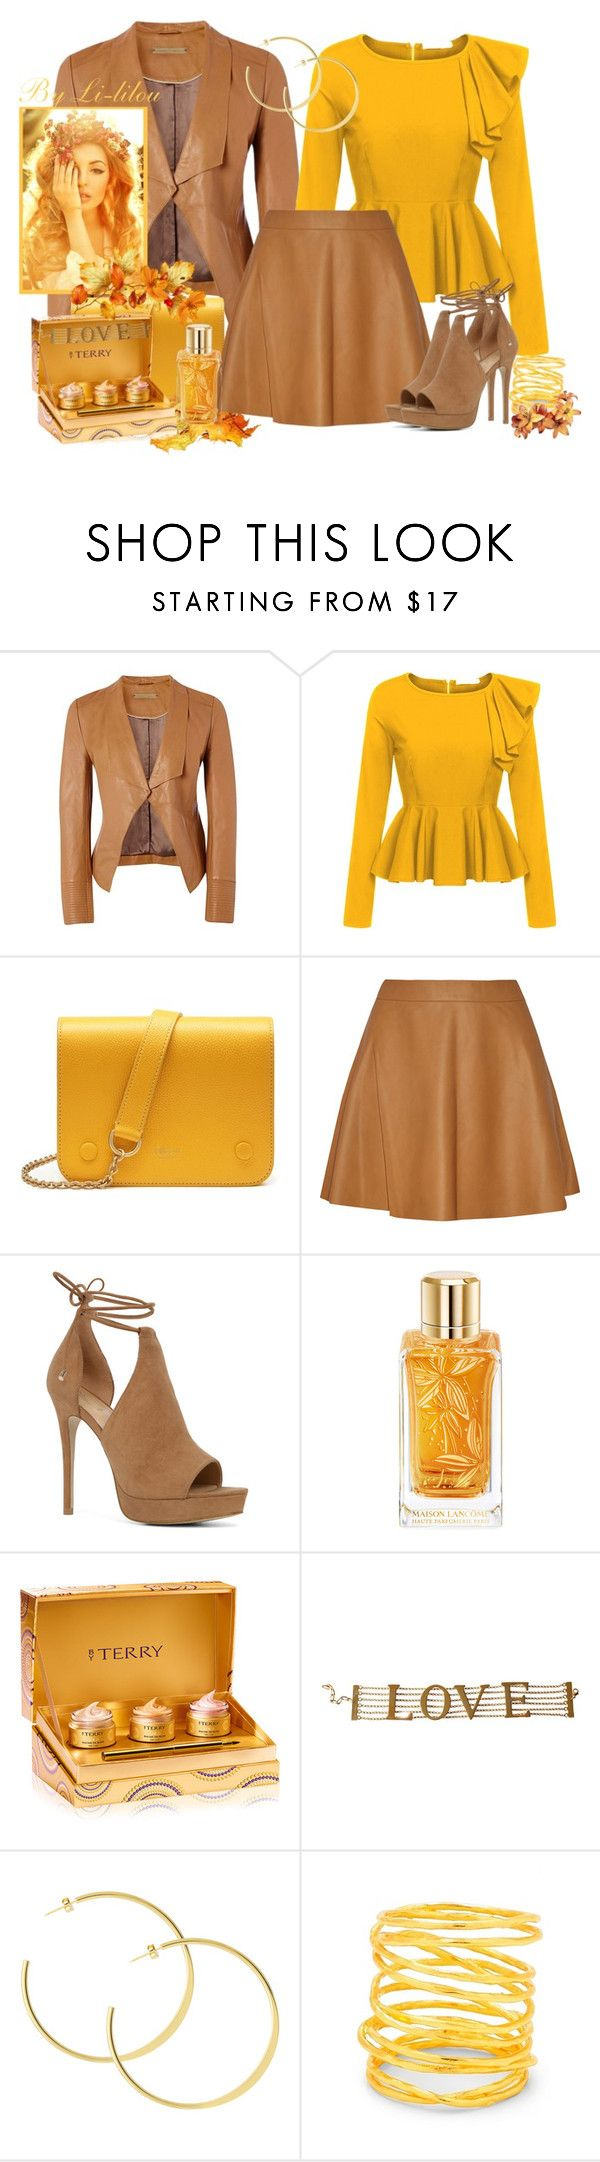 """""""Love Terry"""" by li-lilou ❤ liked on Polyvore featuring Richards Radcliffe, Mulberry, ALDO, Lancôme, By Terry, Dolce&Gabbana and Gorjana"""